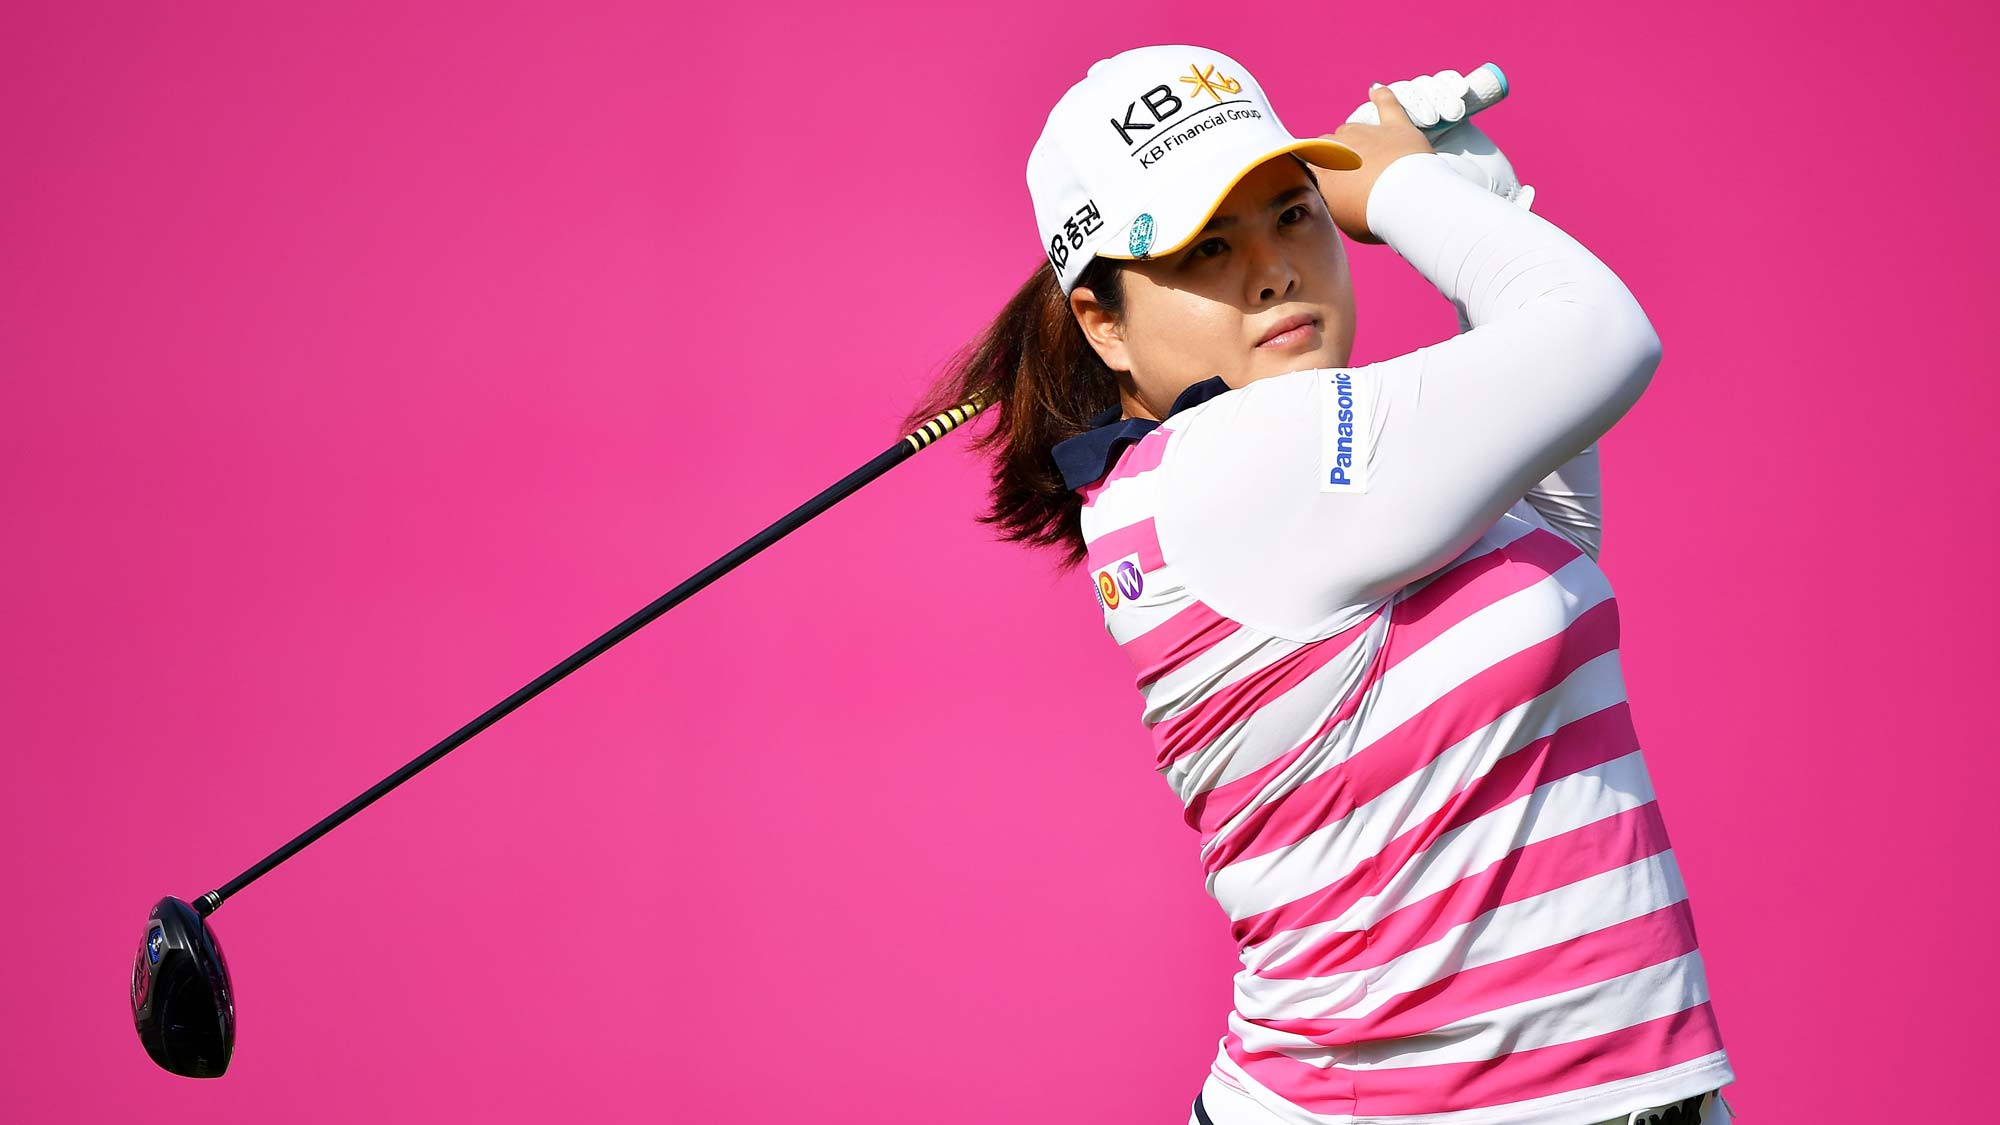 Inbee Park of South Korea tees off during day two of the Evian Championship